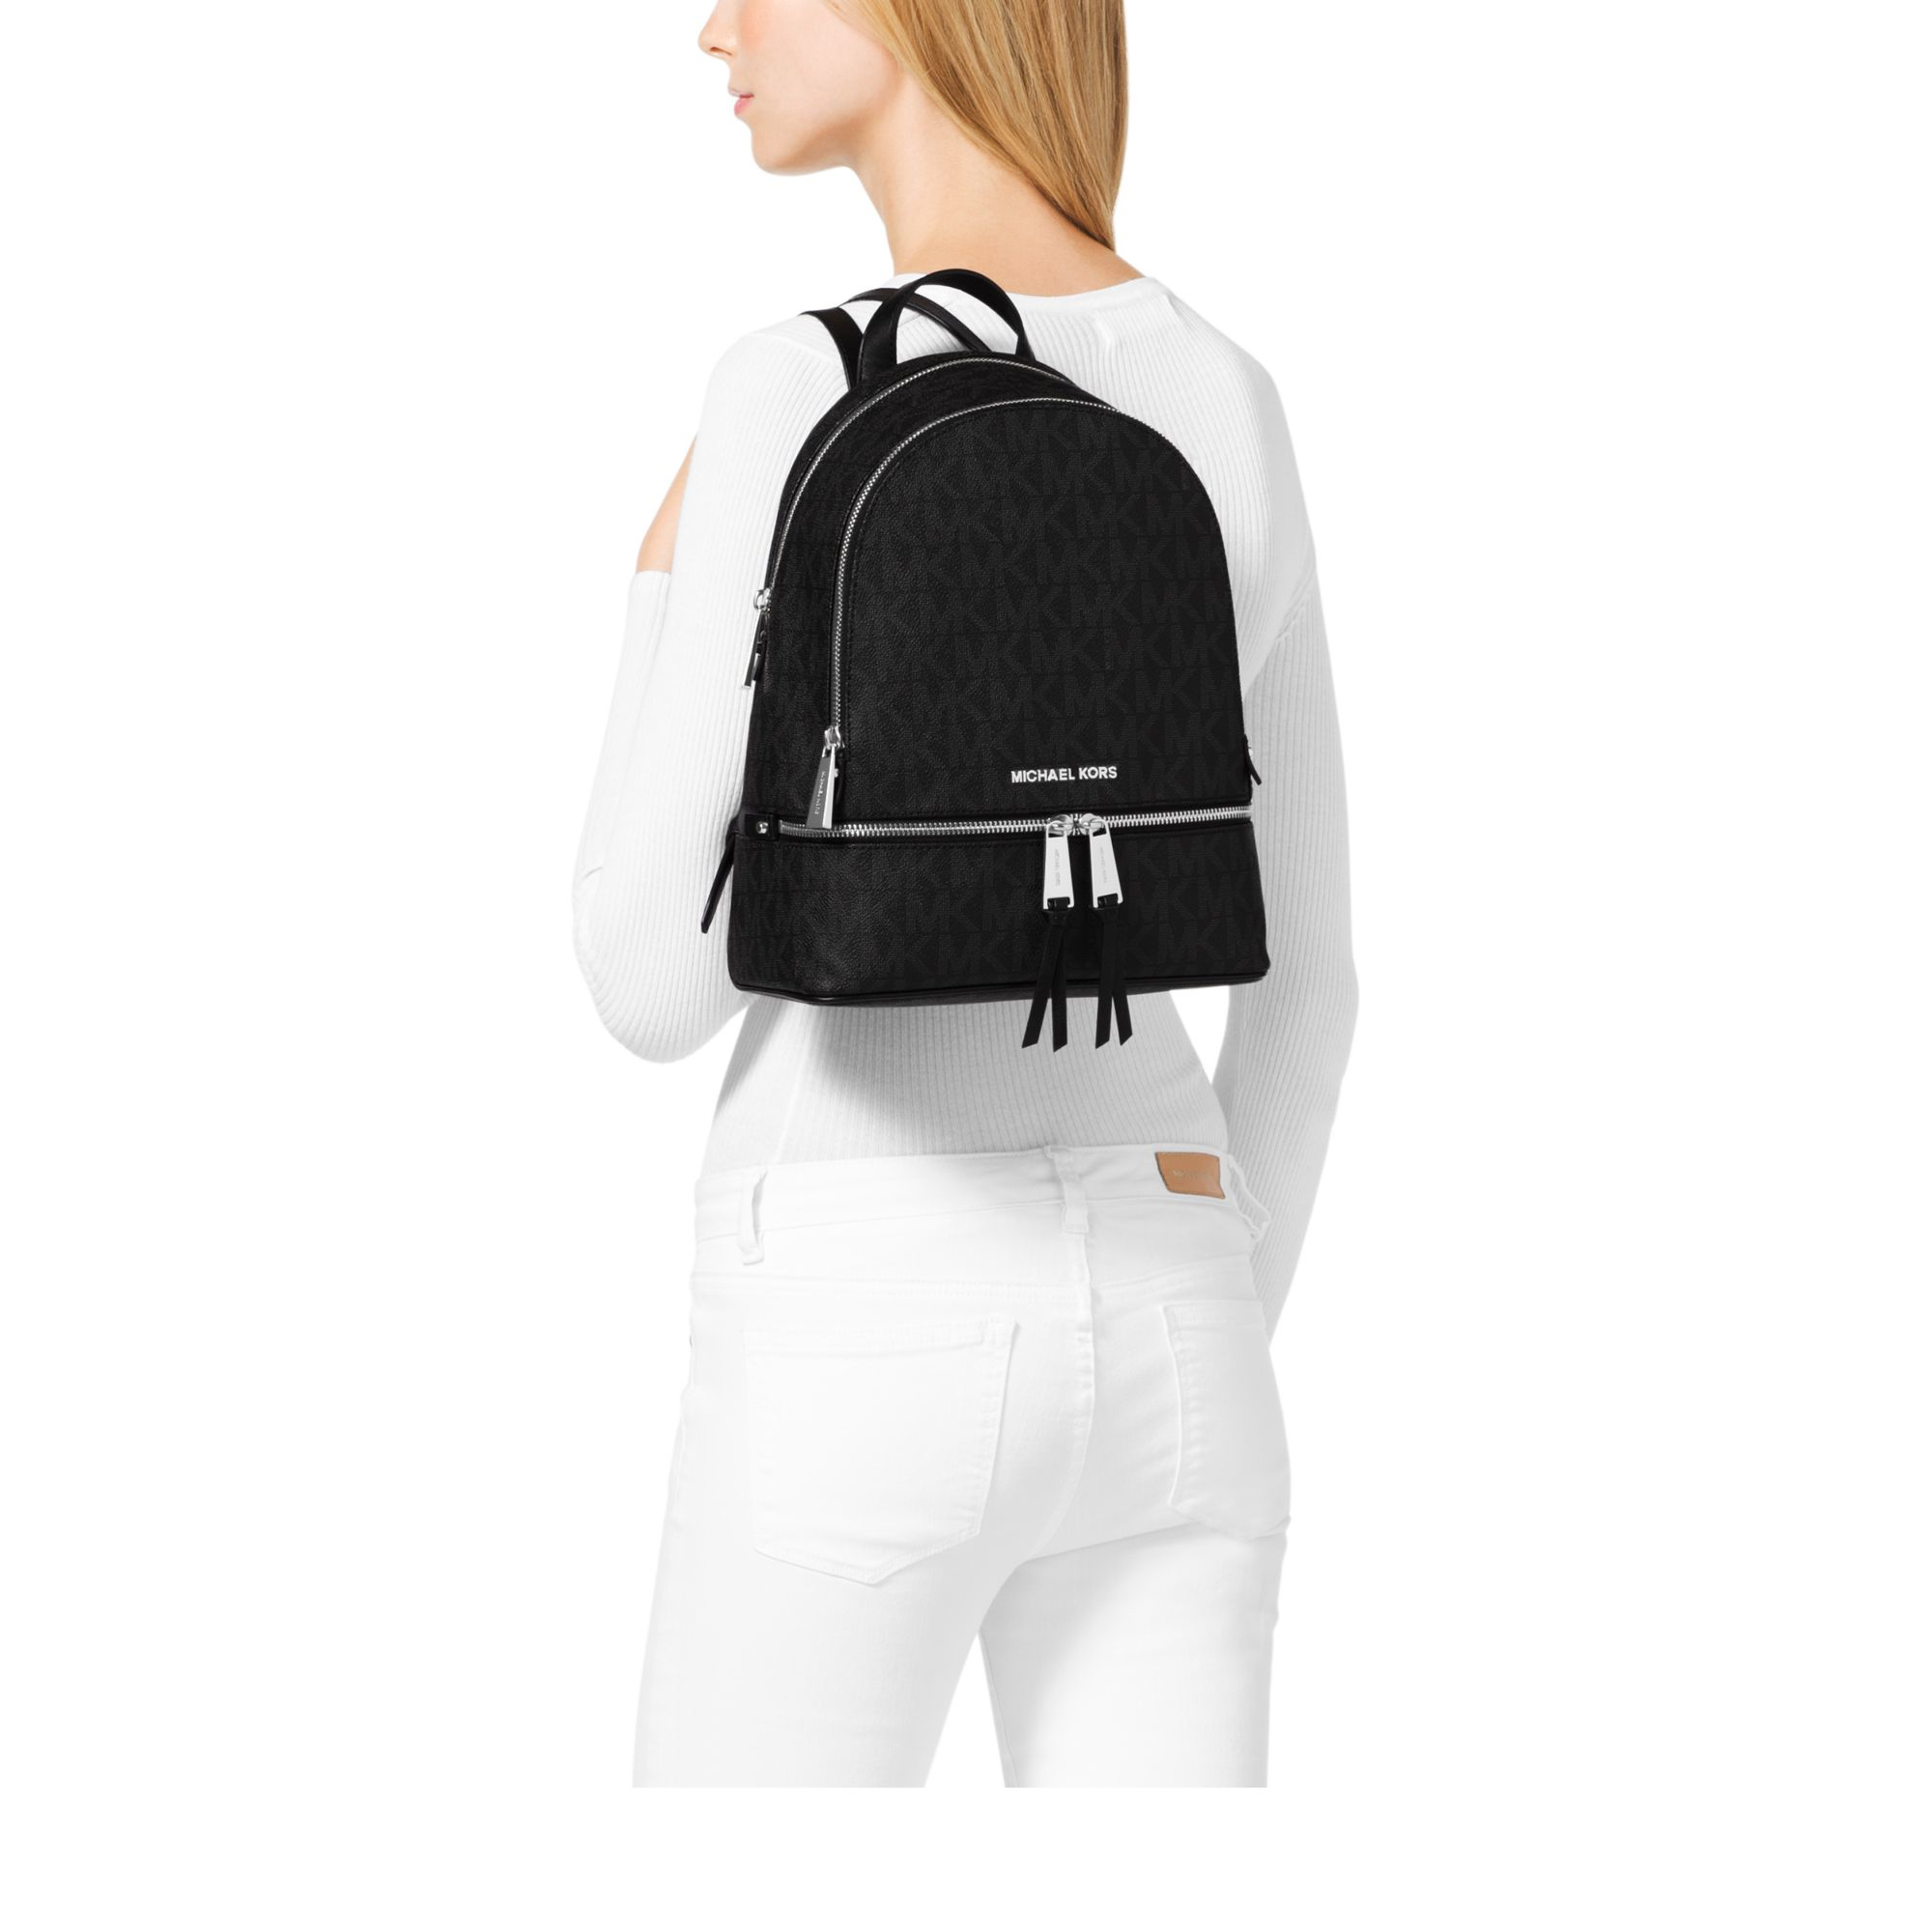 b4f4eb21d0734 Lyst - Michael Kors Rhea Medium Logo Backpack in Black